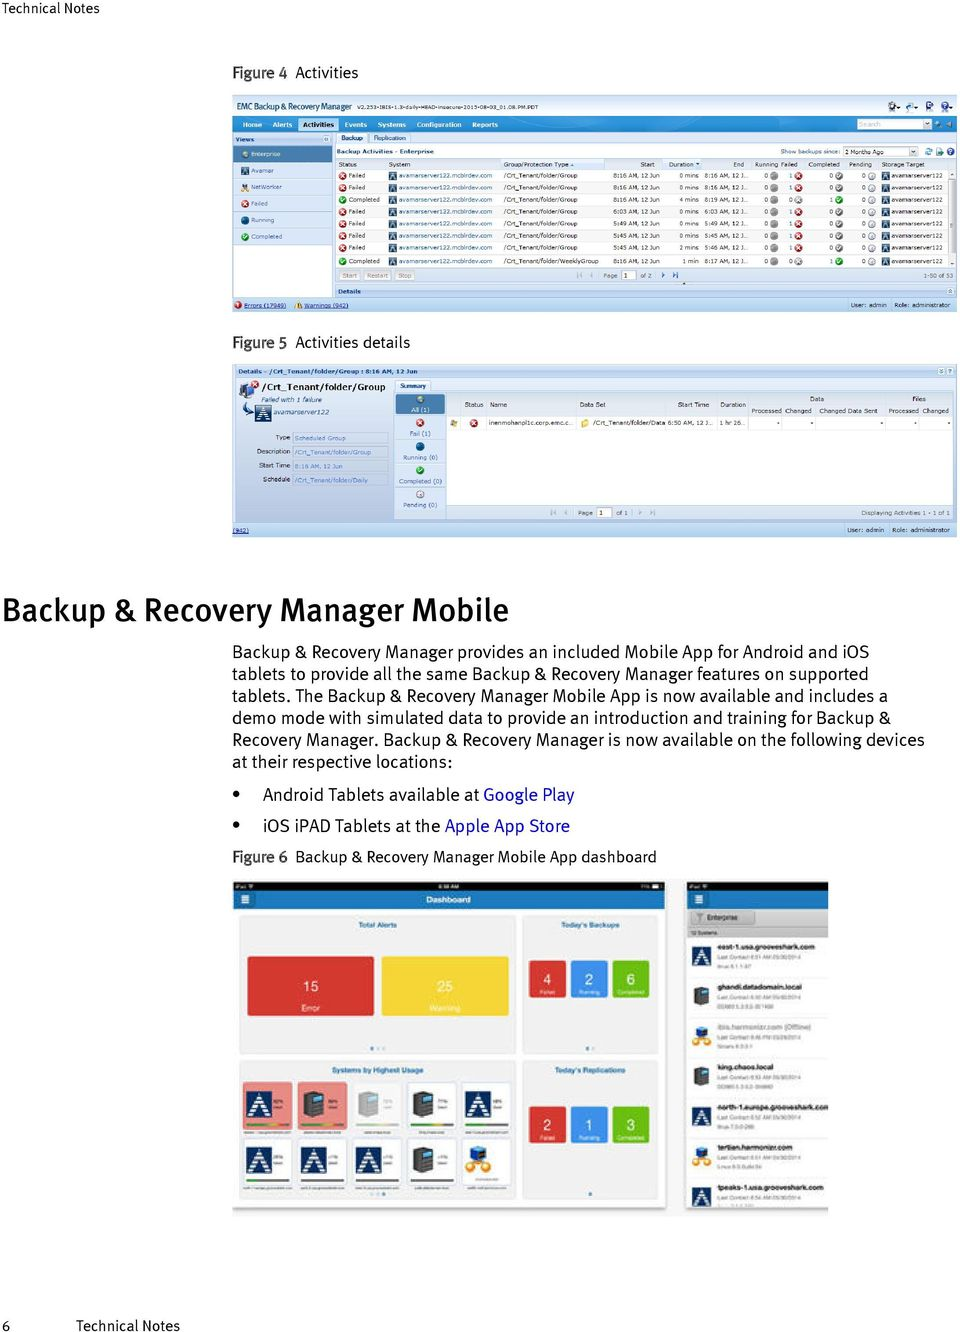 The Backup & Recovery Manager Mobile App is now available and includes a demo mode with simulated data to provide an introduction and training for Backup & Recovery